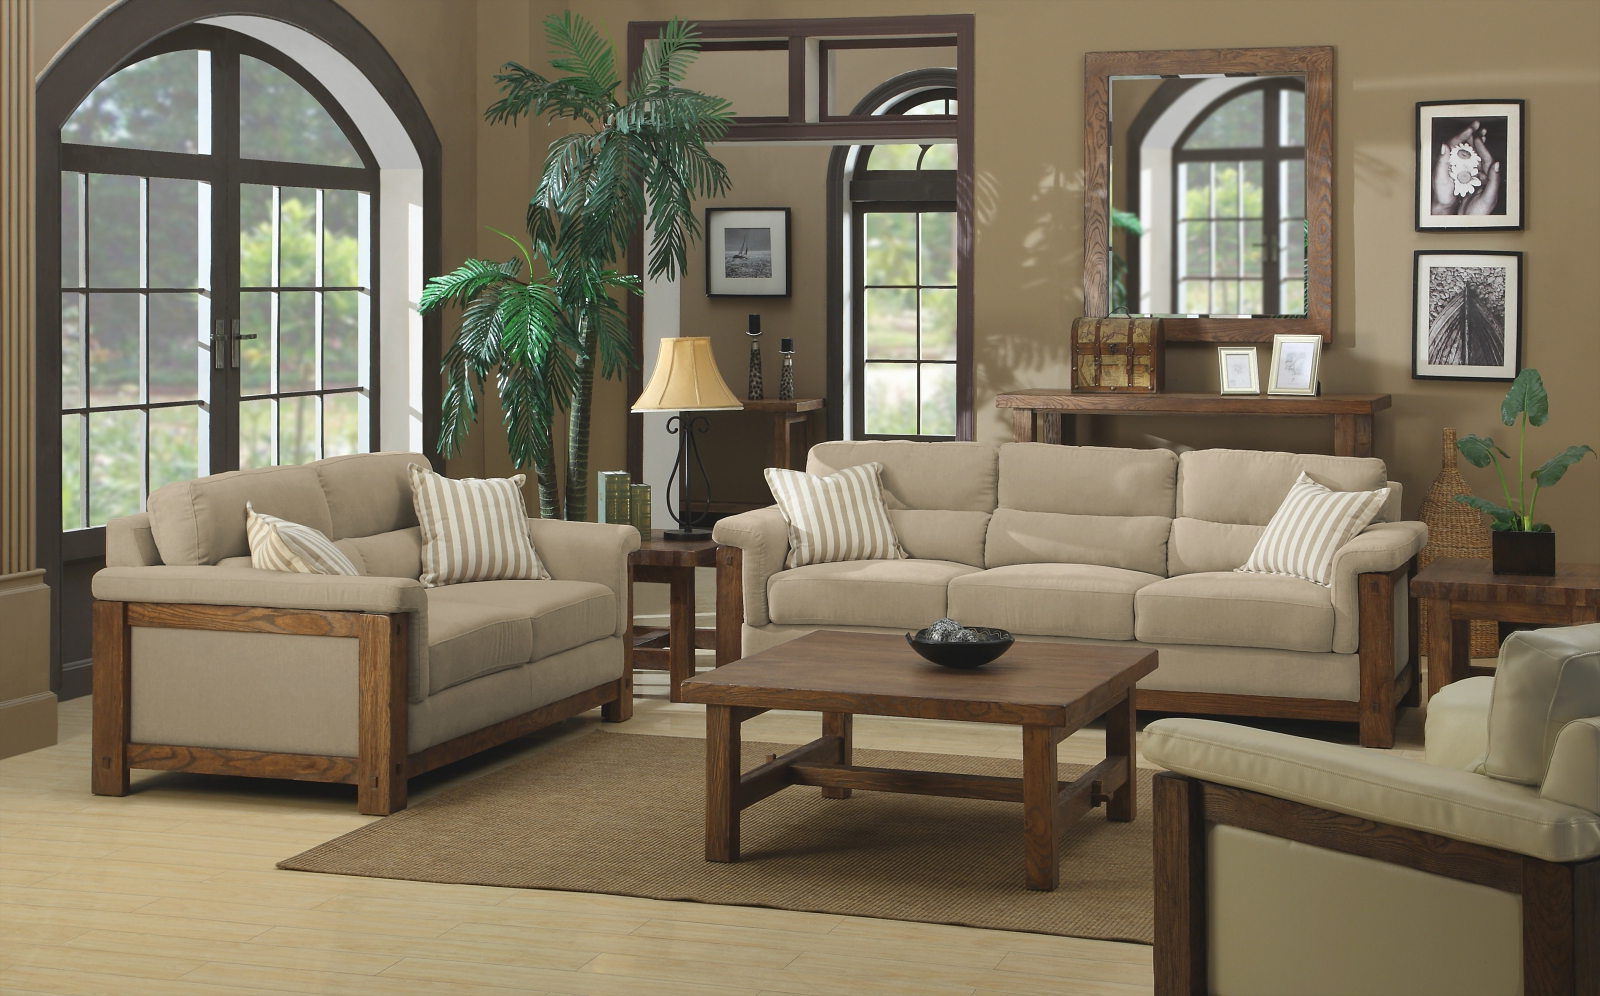 brown beige living room ideas living room in beige color 19740